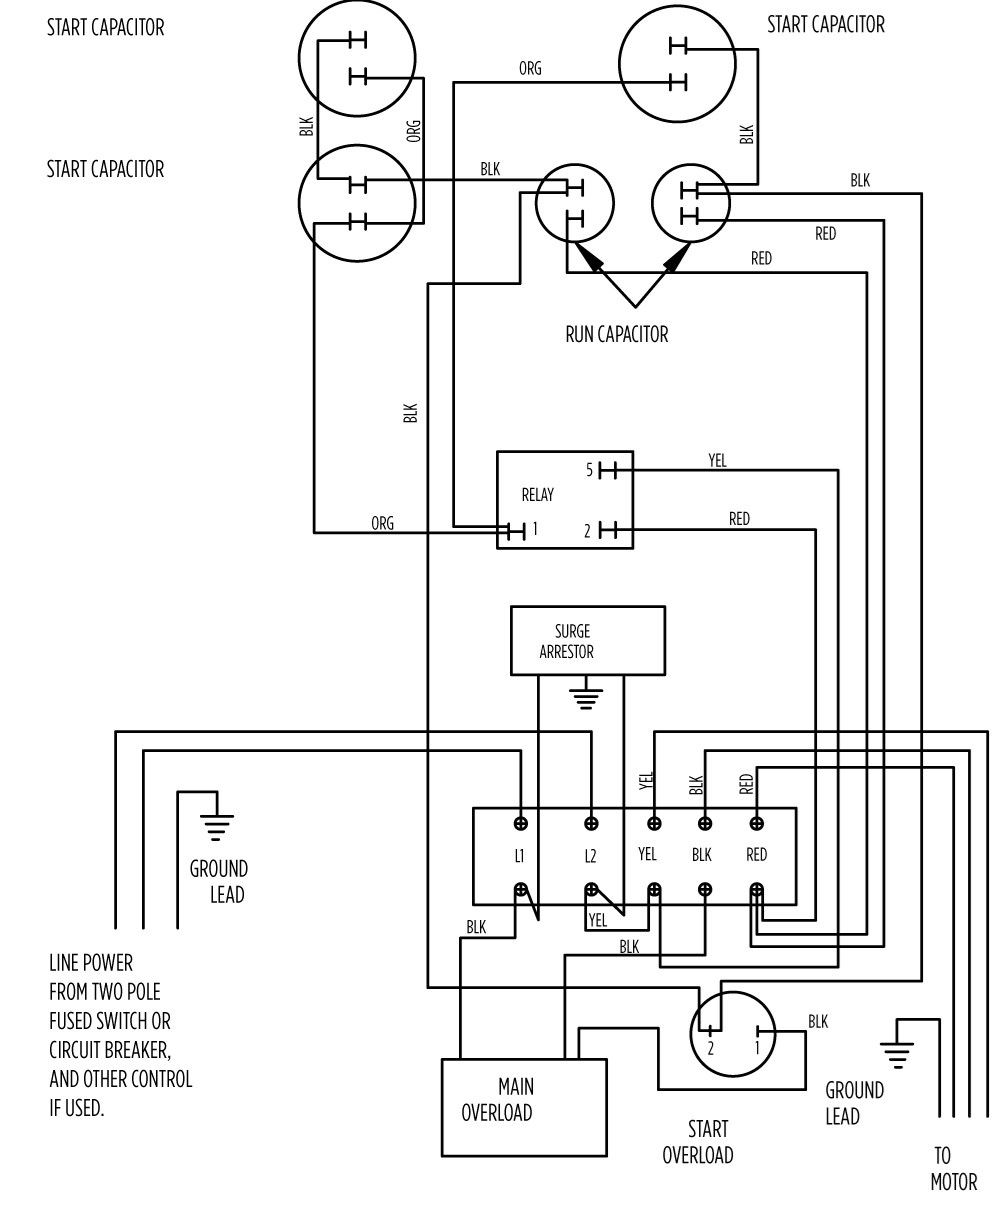 [SCHEMATICS_4FR]  AIM Manual - Page 57 | Single-Phase Motors and Controls | Motor Maintenance  | North America Water | Franklin Electric | Wiring Diagram Of Single Phase Motor |  | Franklin Electric